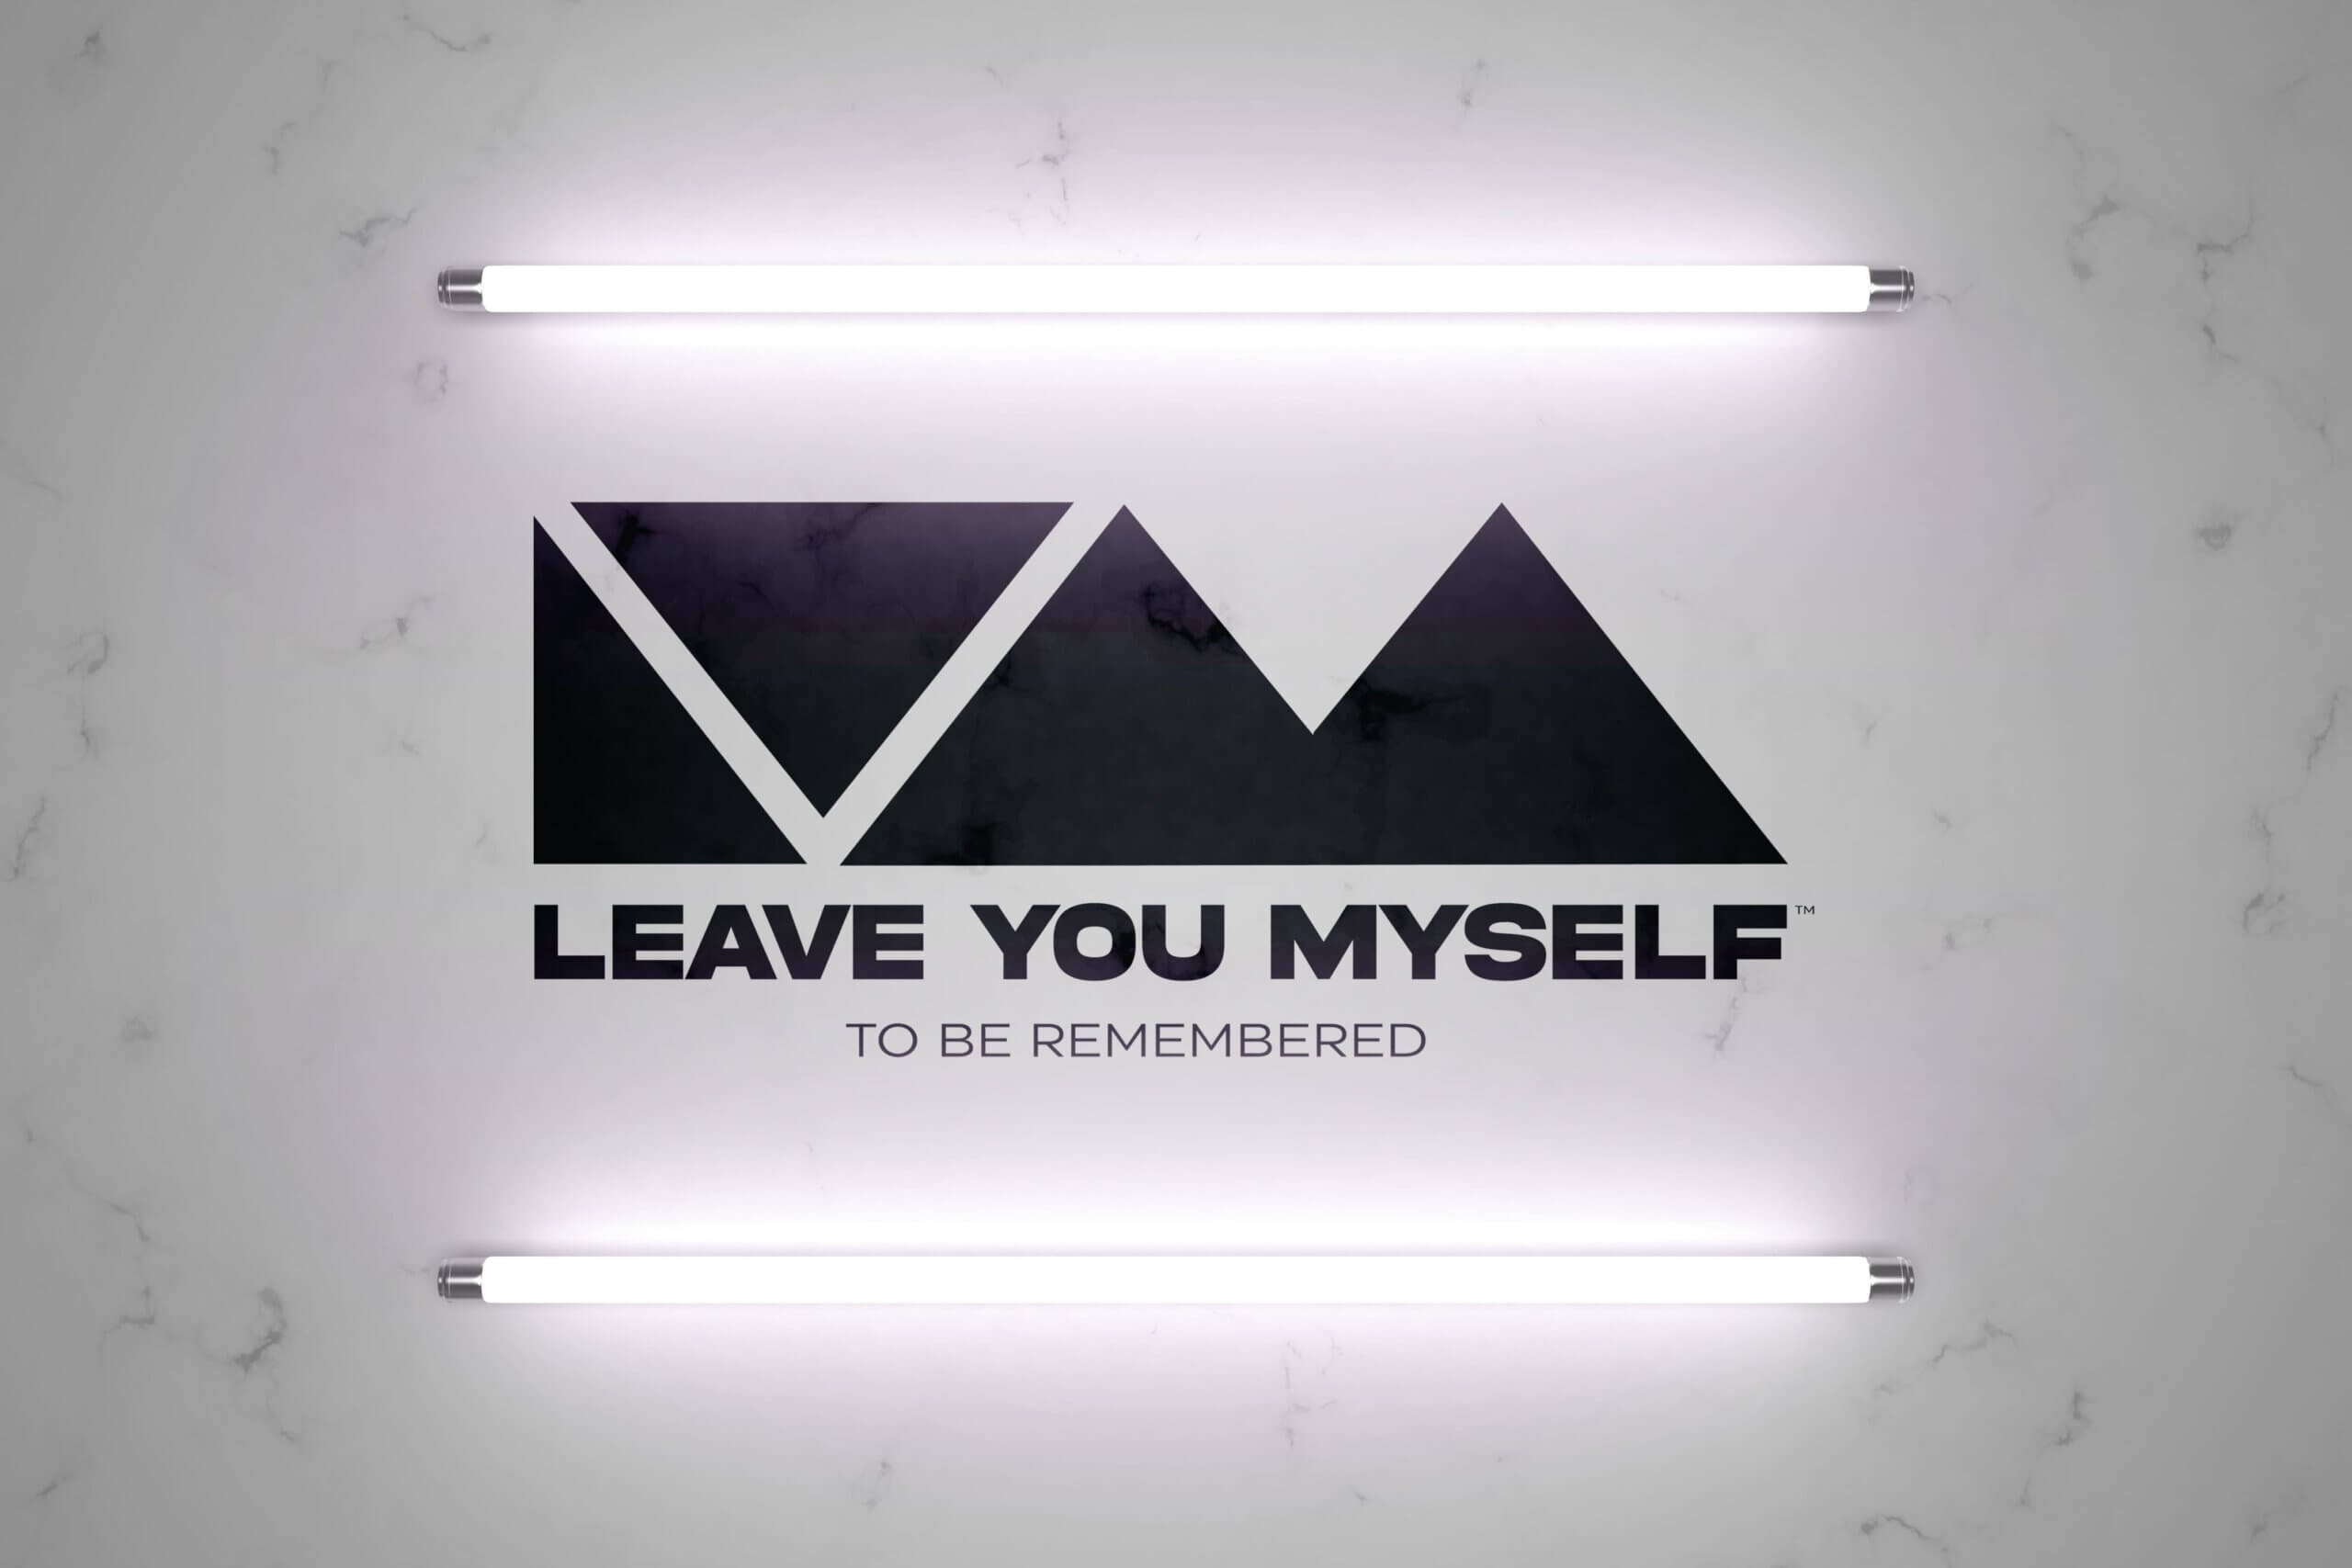 Leave You Myself Logo In Lights